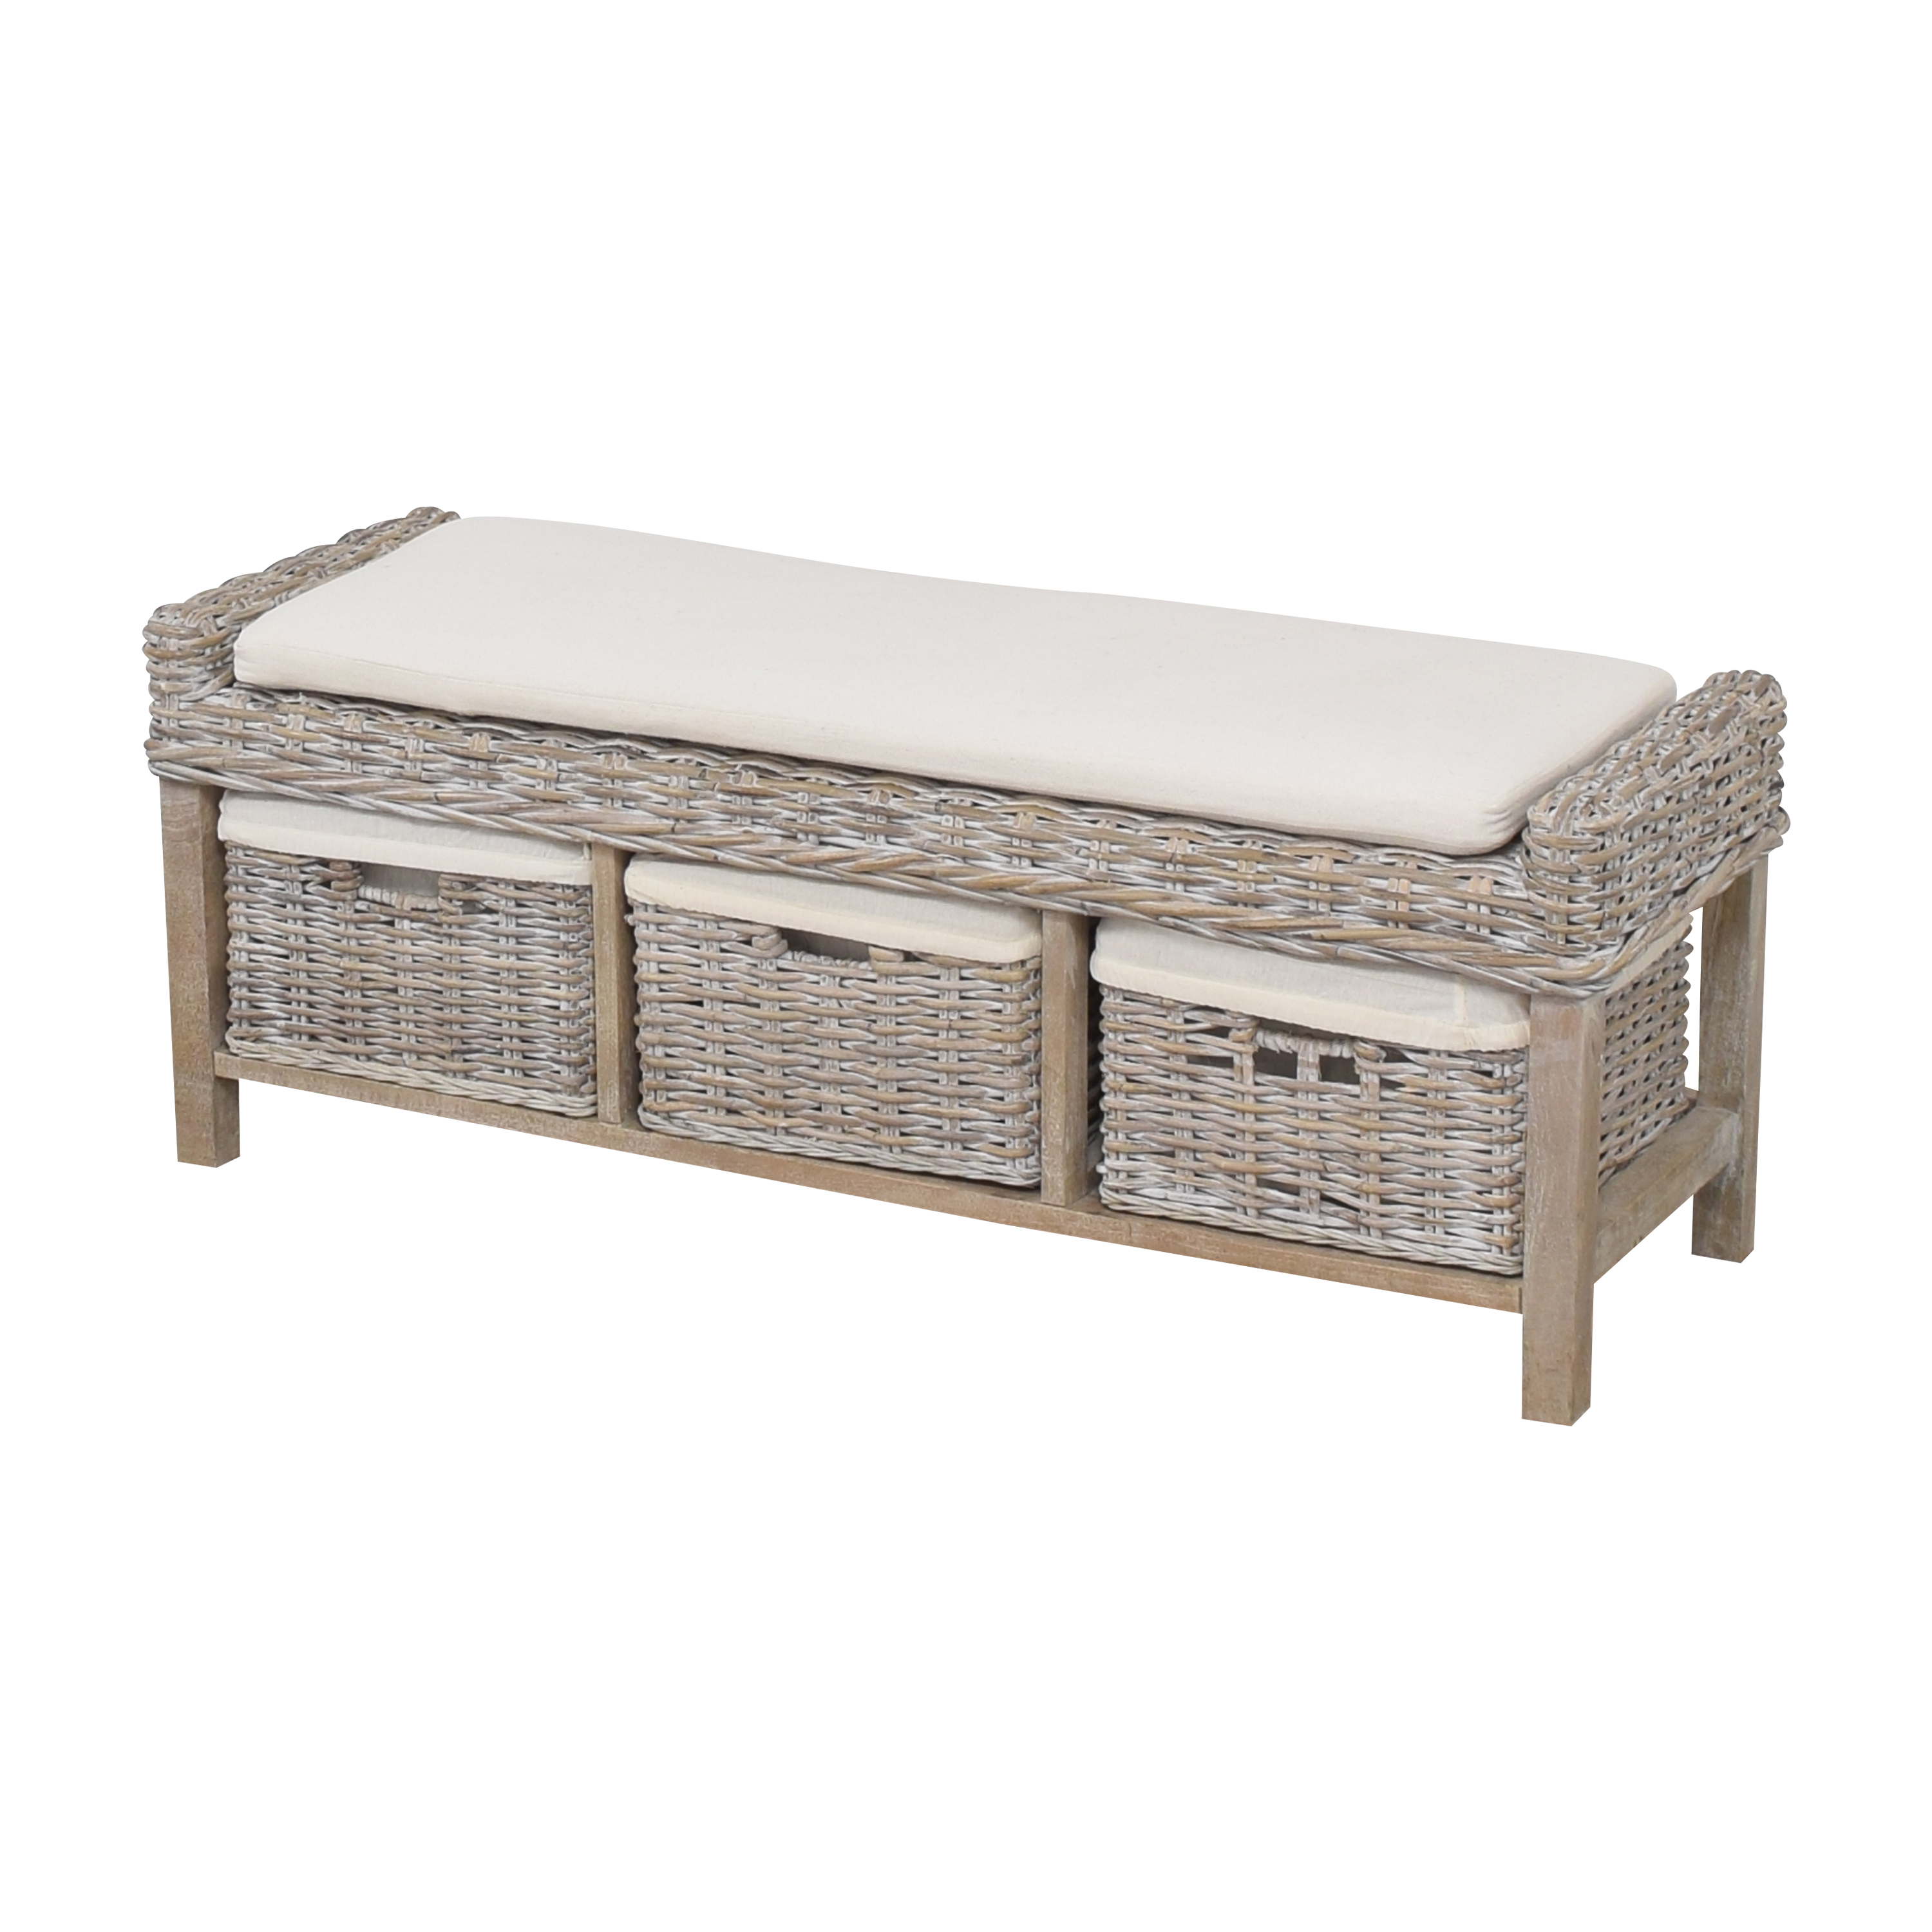 shop Wayfair Wayfair Sephina Upholstered Cubby Storage Bench online